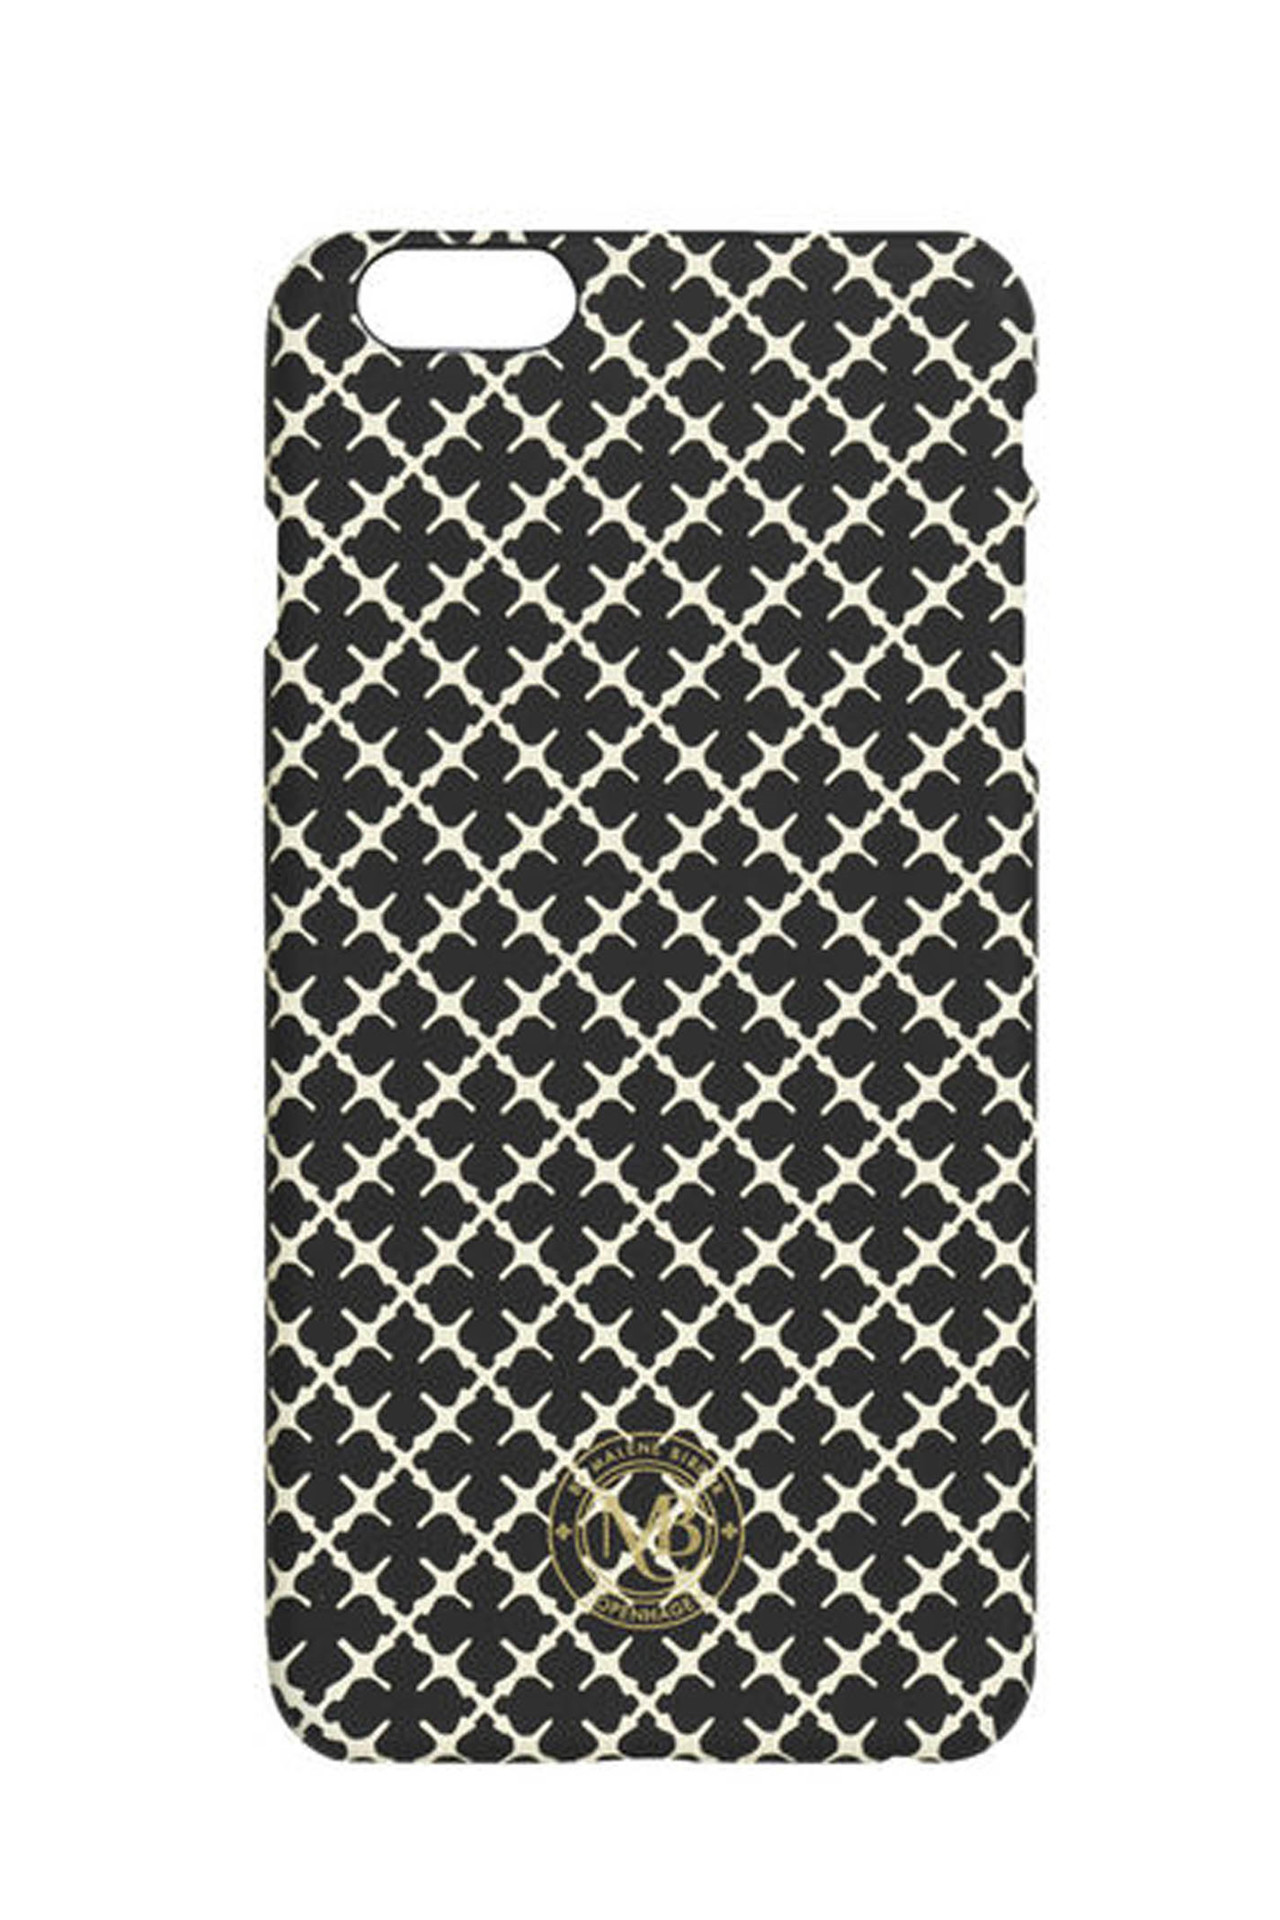 PAMSY6PL SORT HVID iphone cover fra By Malene Birger - Køb iphone cover  online her 45e962f1e00c2